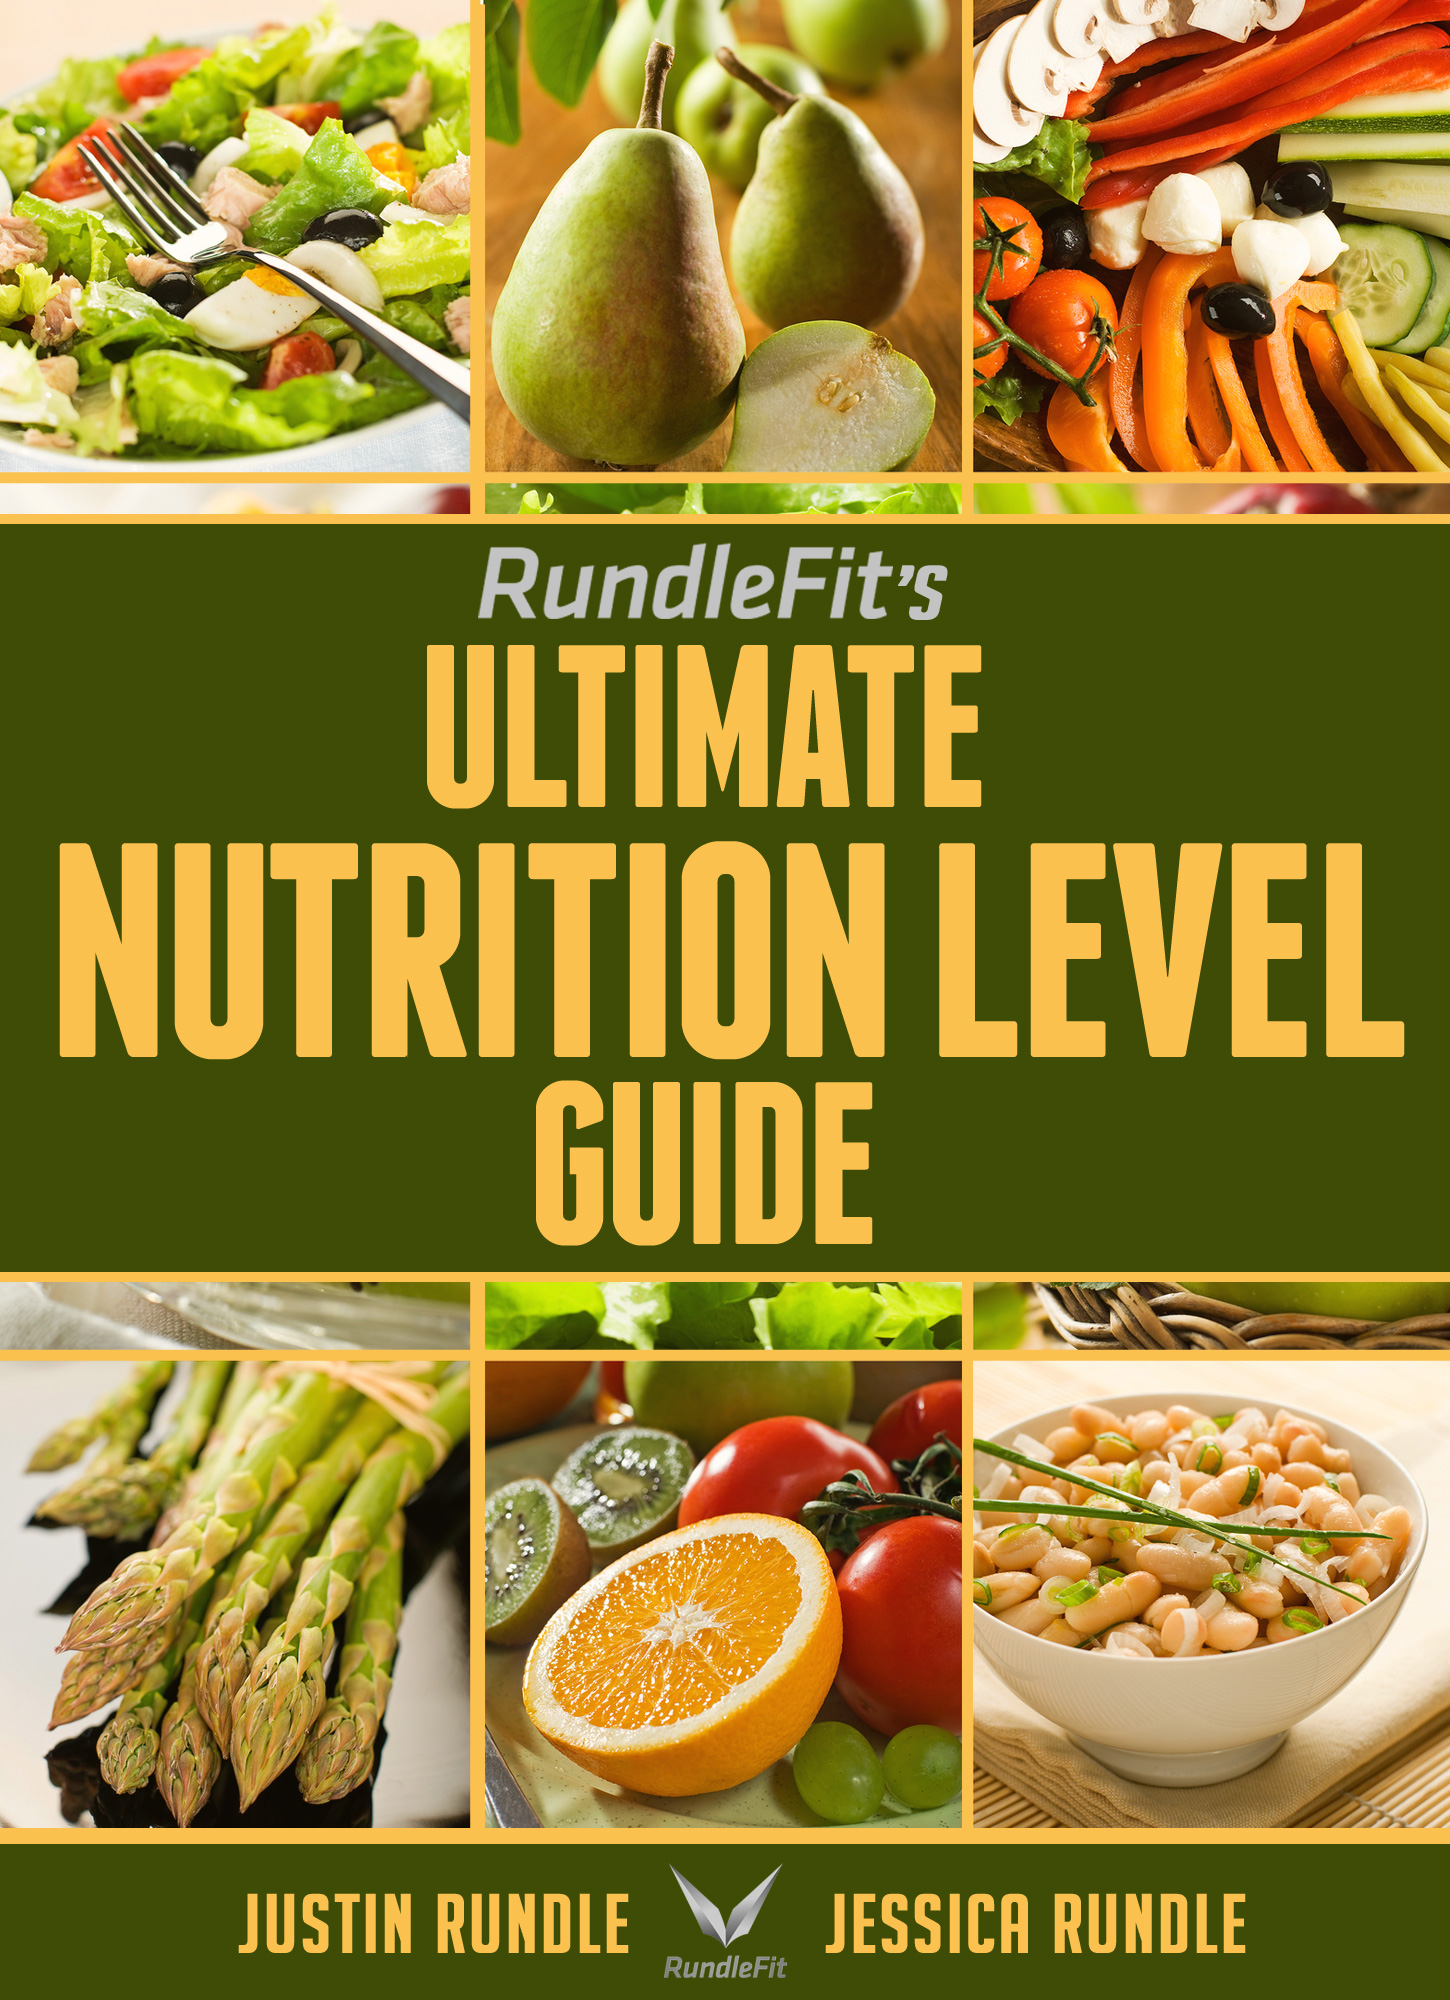 RundleFit's Ultimate Nutrition Level Guide